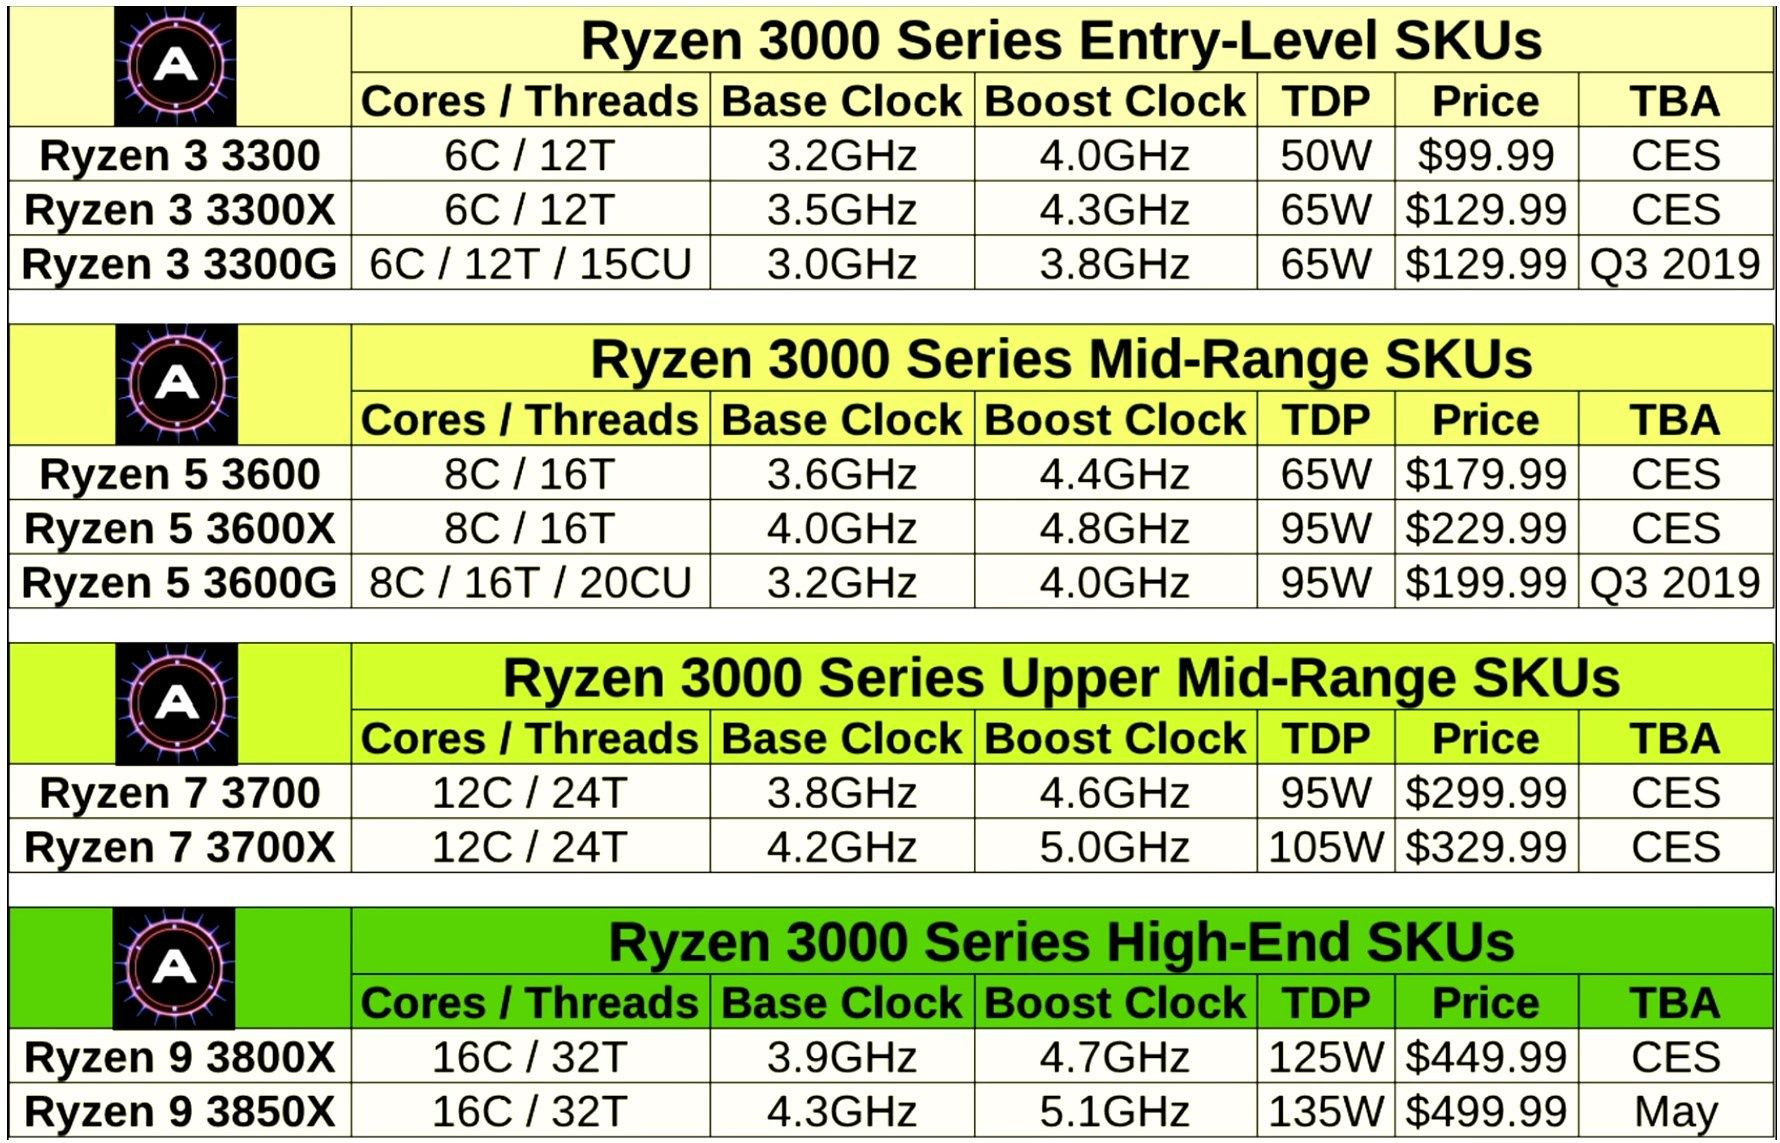 Amd Ryzen 3000 With 16 Core 5 1 Ghz Models Specification And Prices